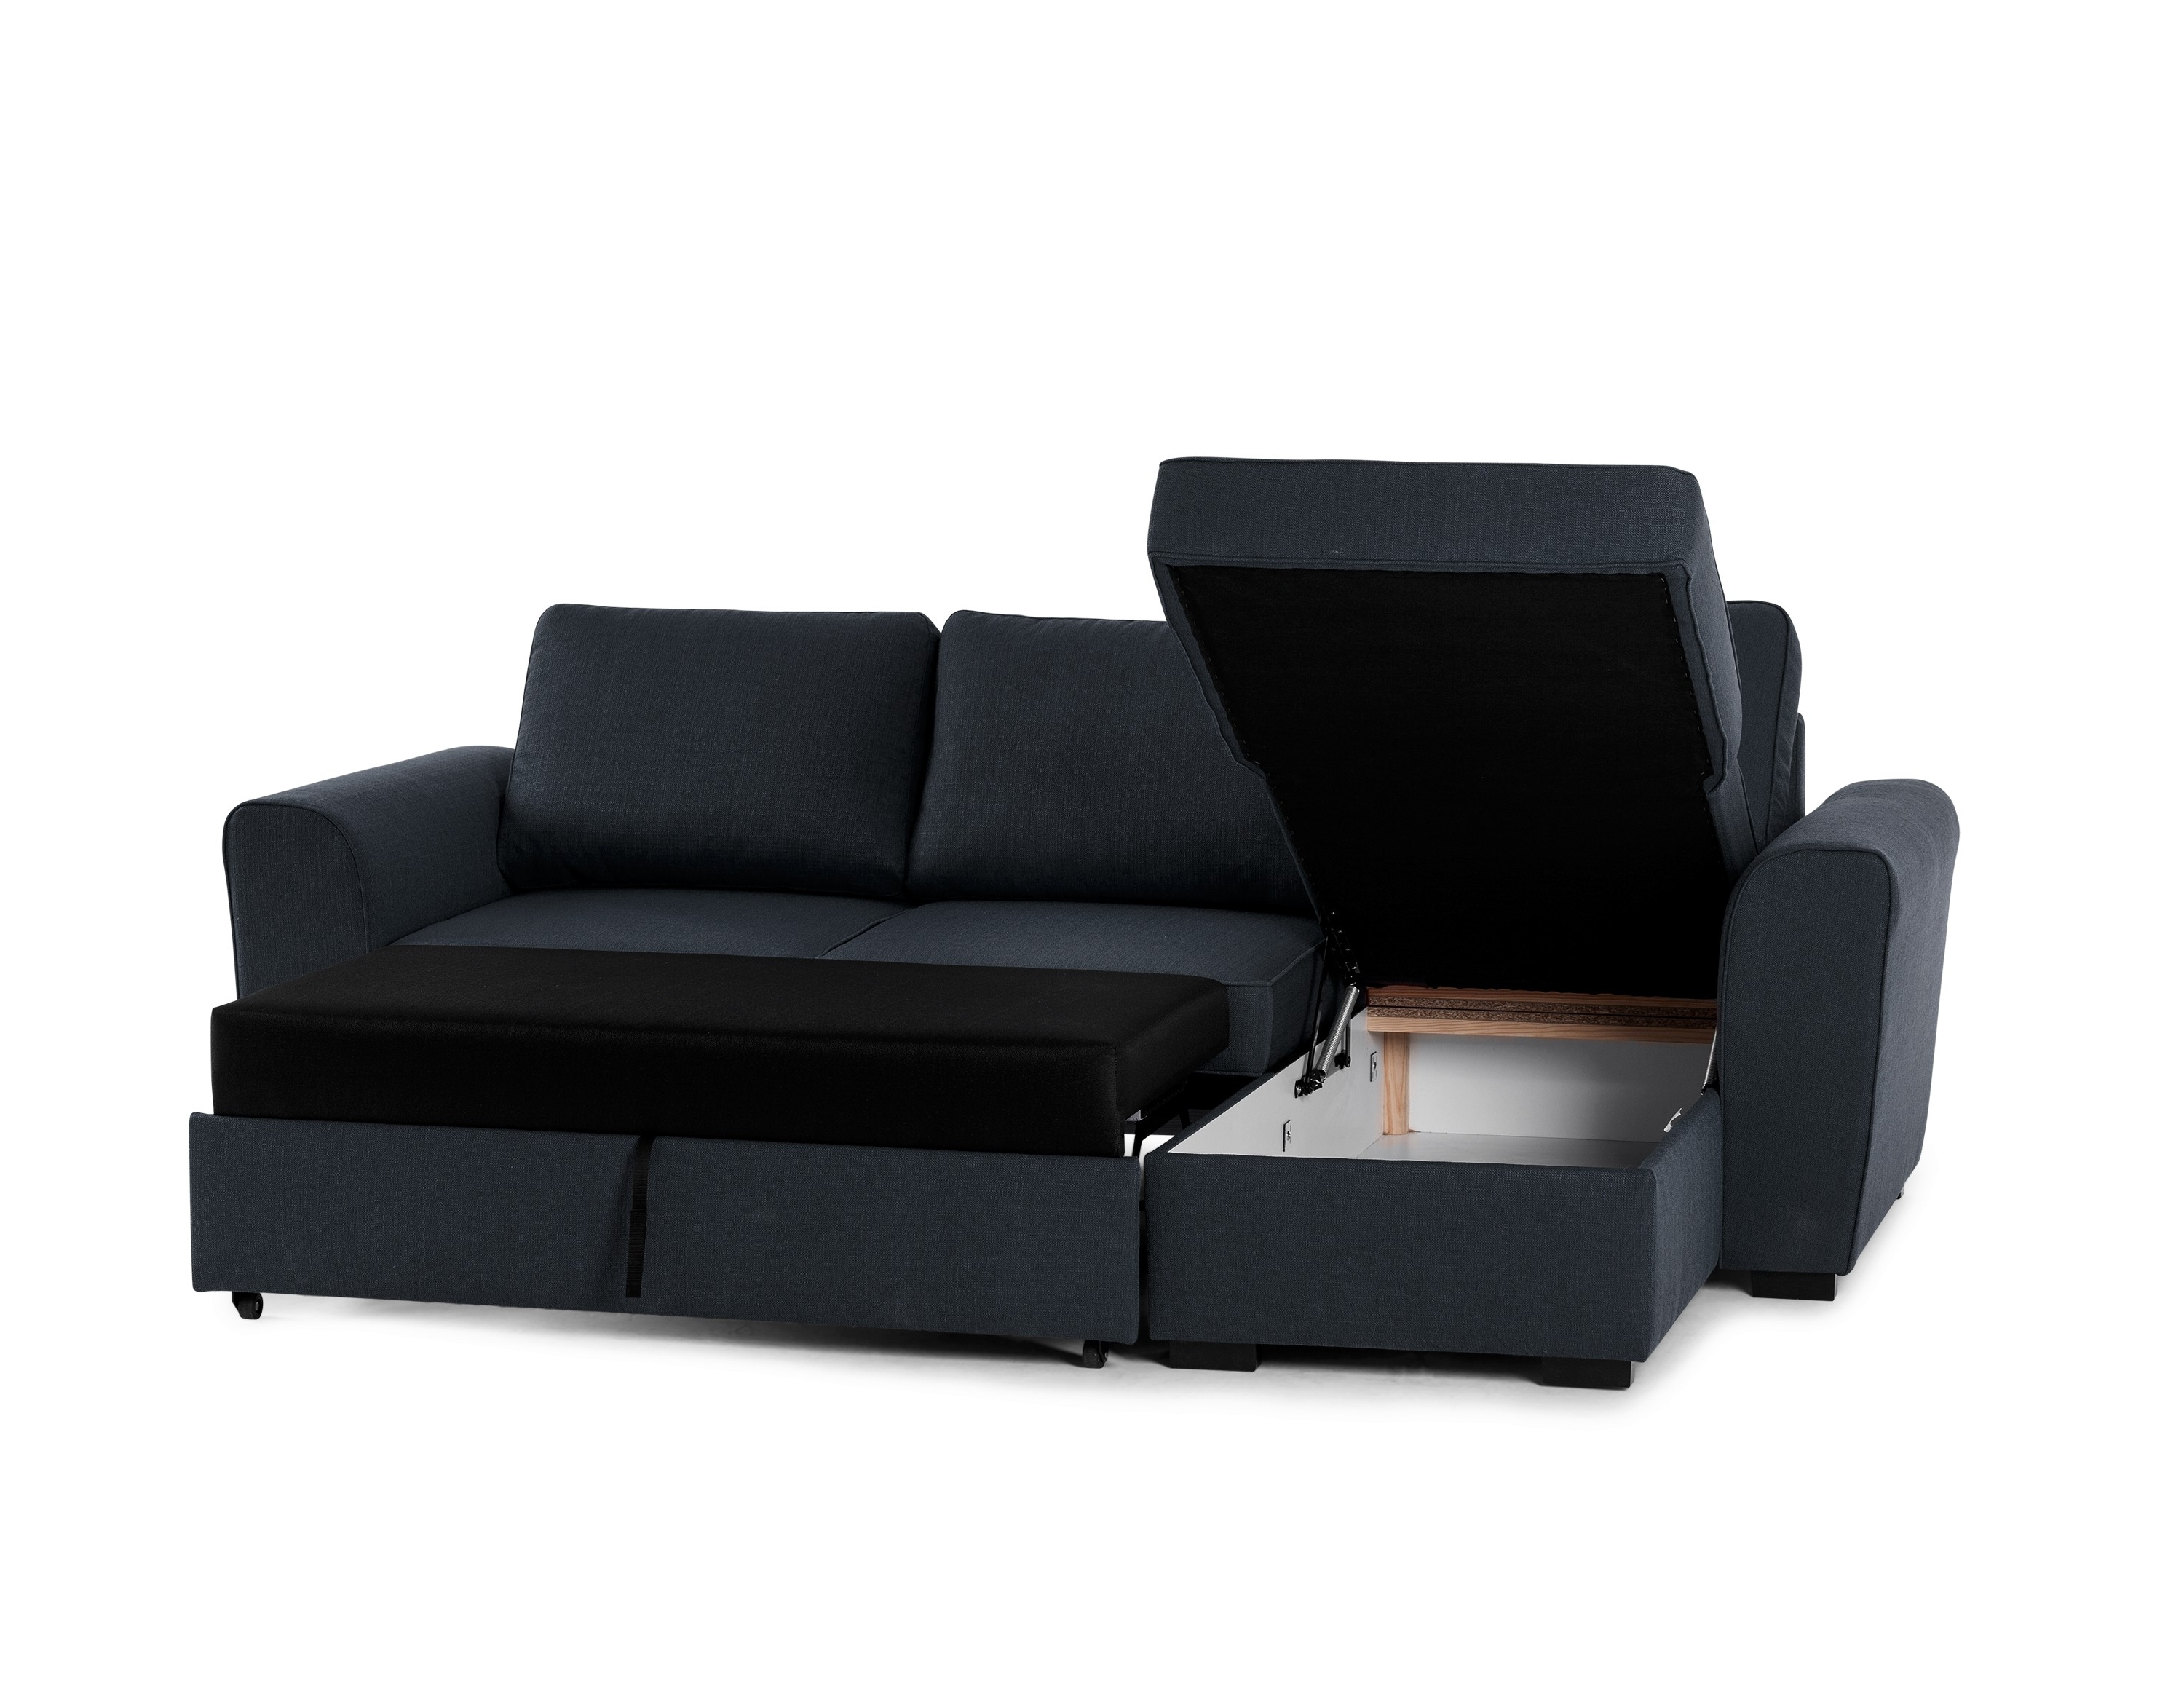 Sectional Sofas At Sears With Regard To 2018 Sears Sofa Bed Sectional • Sofa Bed (View 12 of 15)